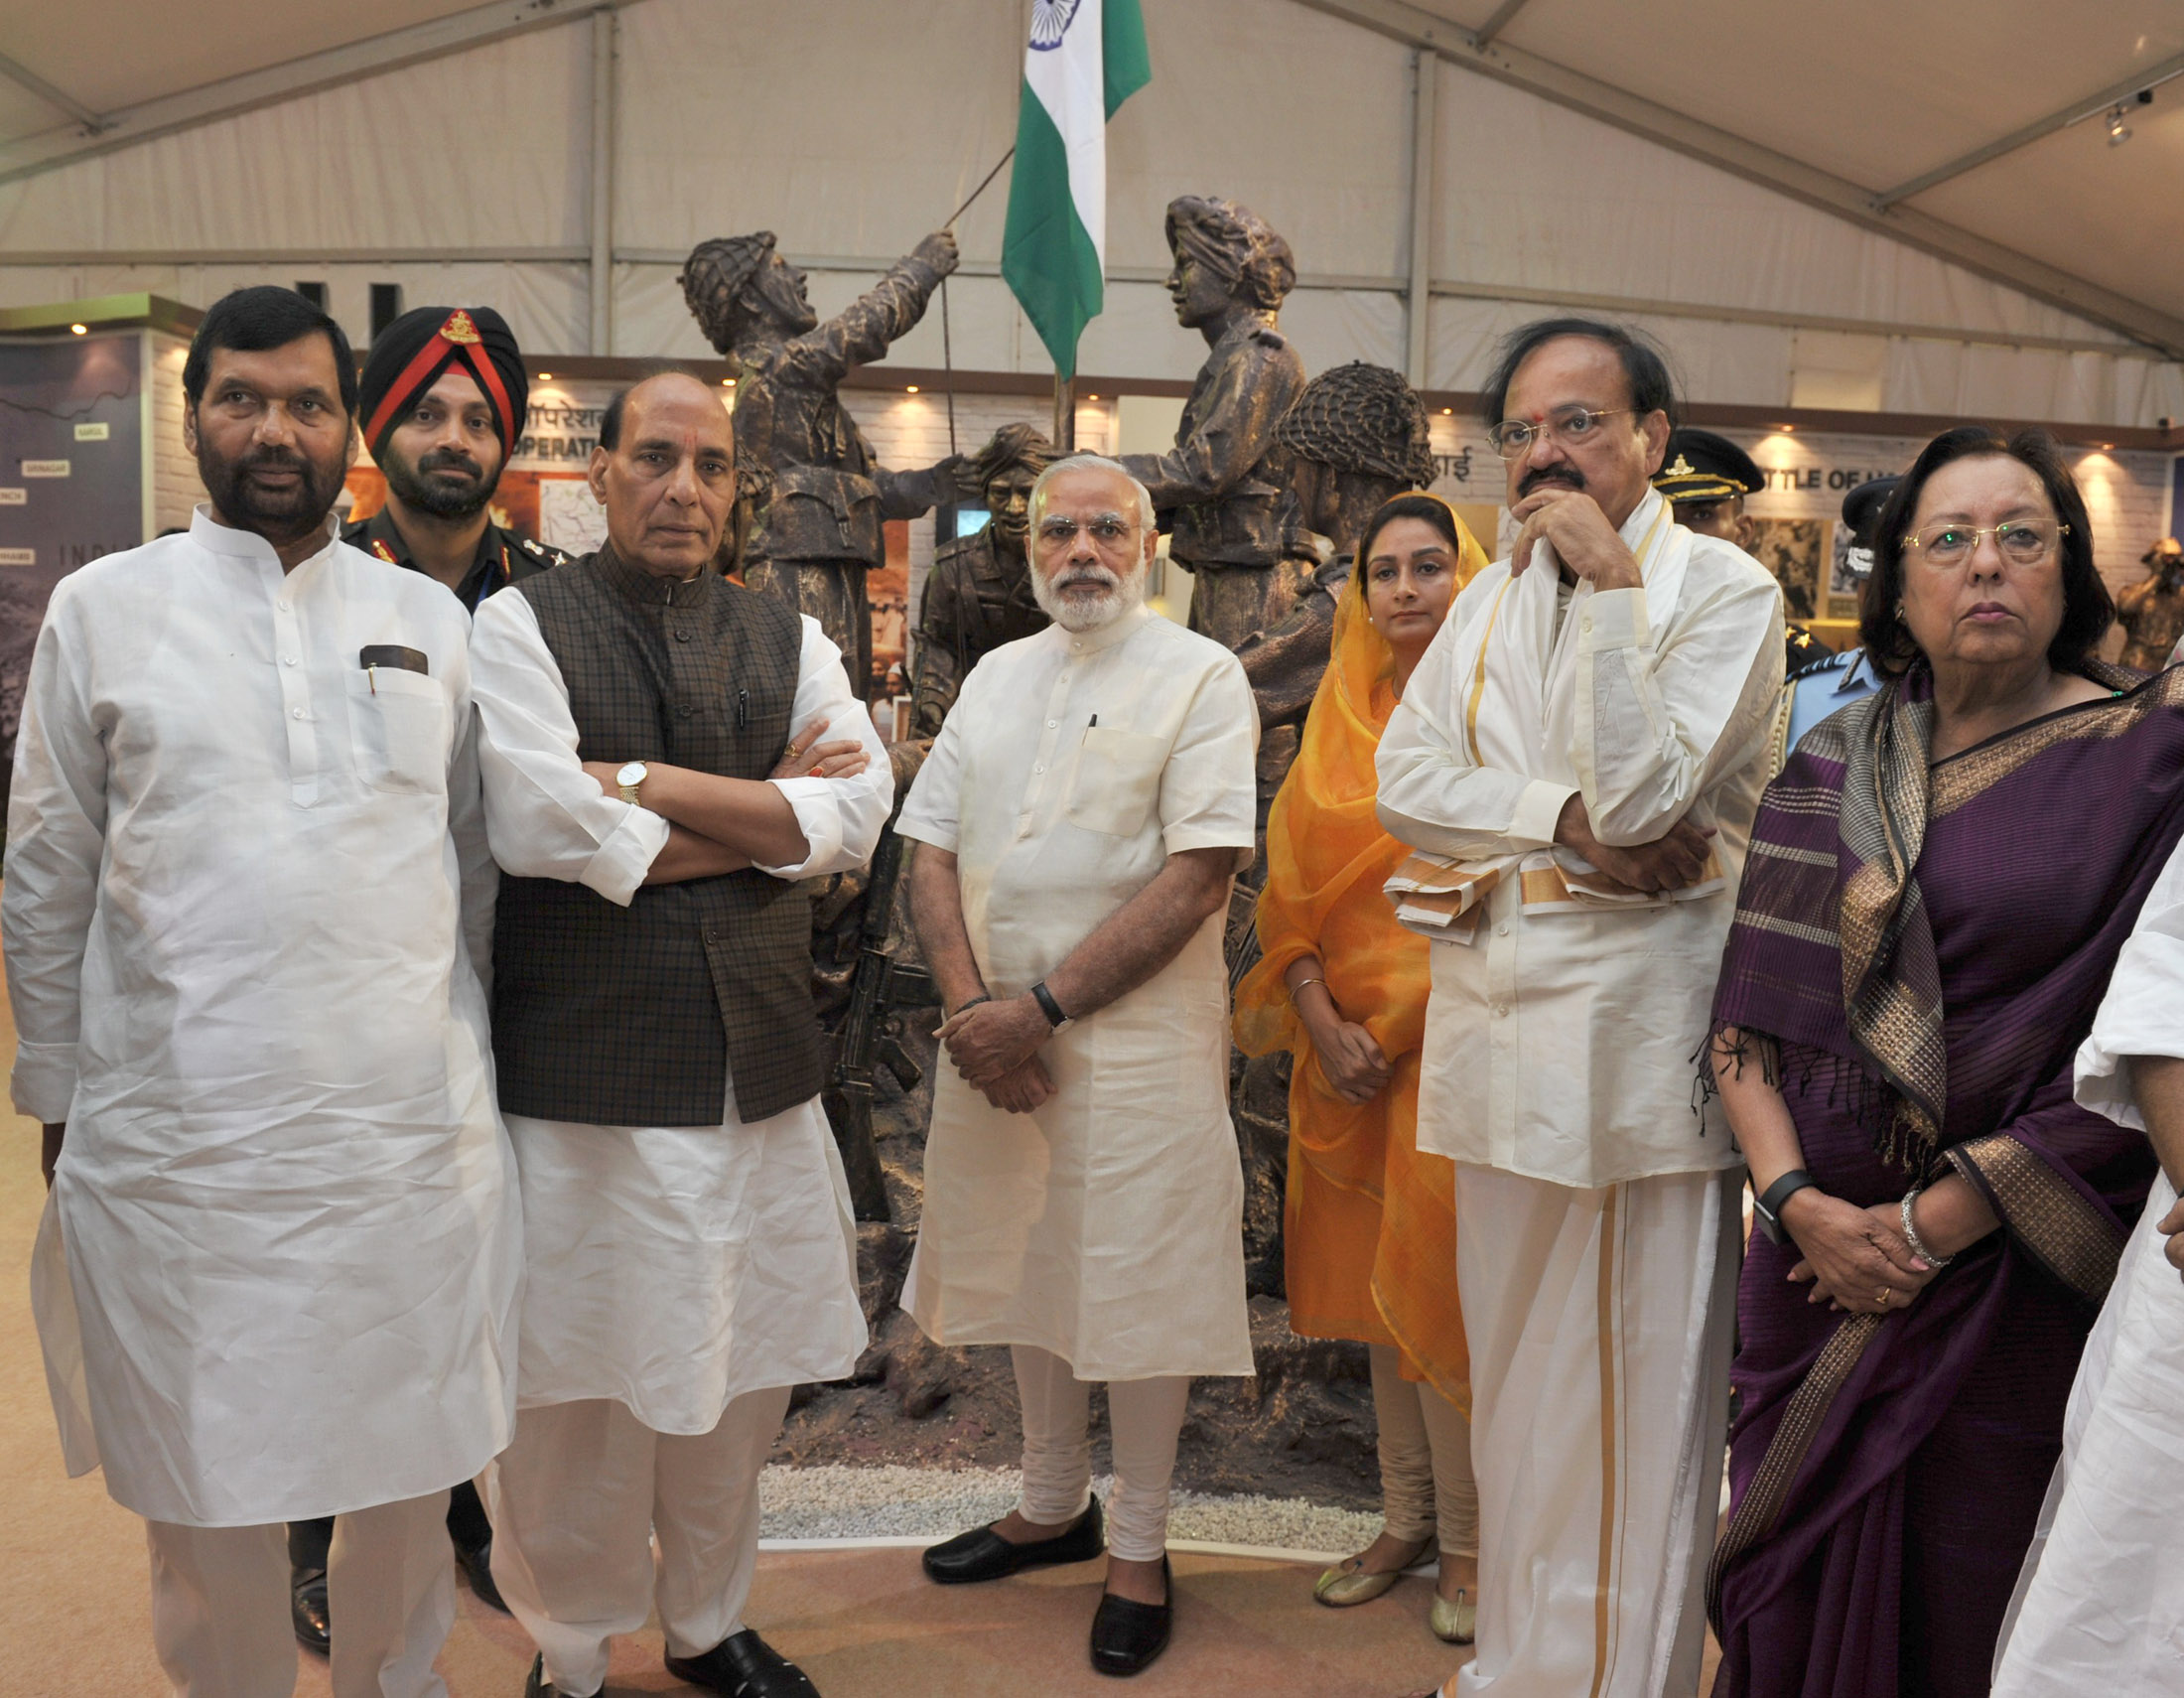 The Prime Minister, Shri Narendra Modi at 'Shauryanjali', a commemorative exhibition on Golden Jubilee of 1965 war, at India Gate, in New Delhi on September 17, 2015. The Union Ministers are also seen.